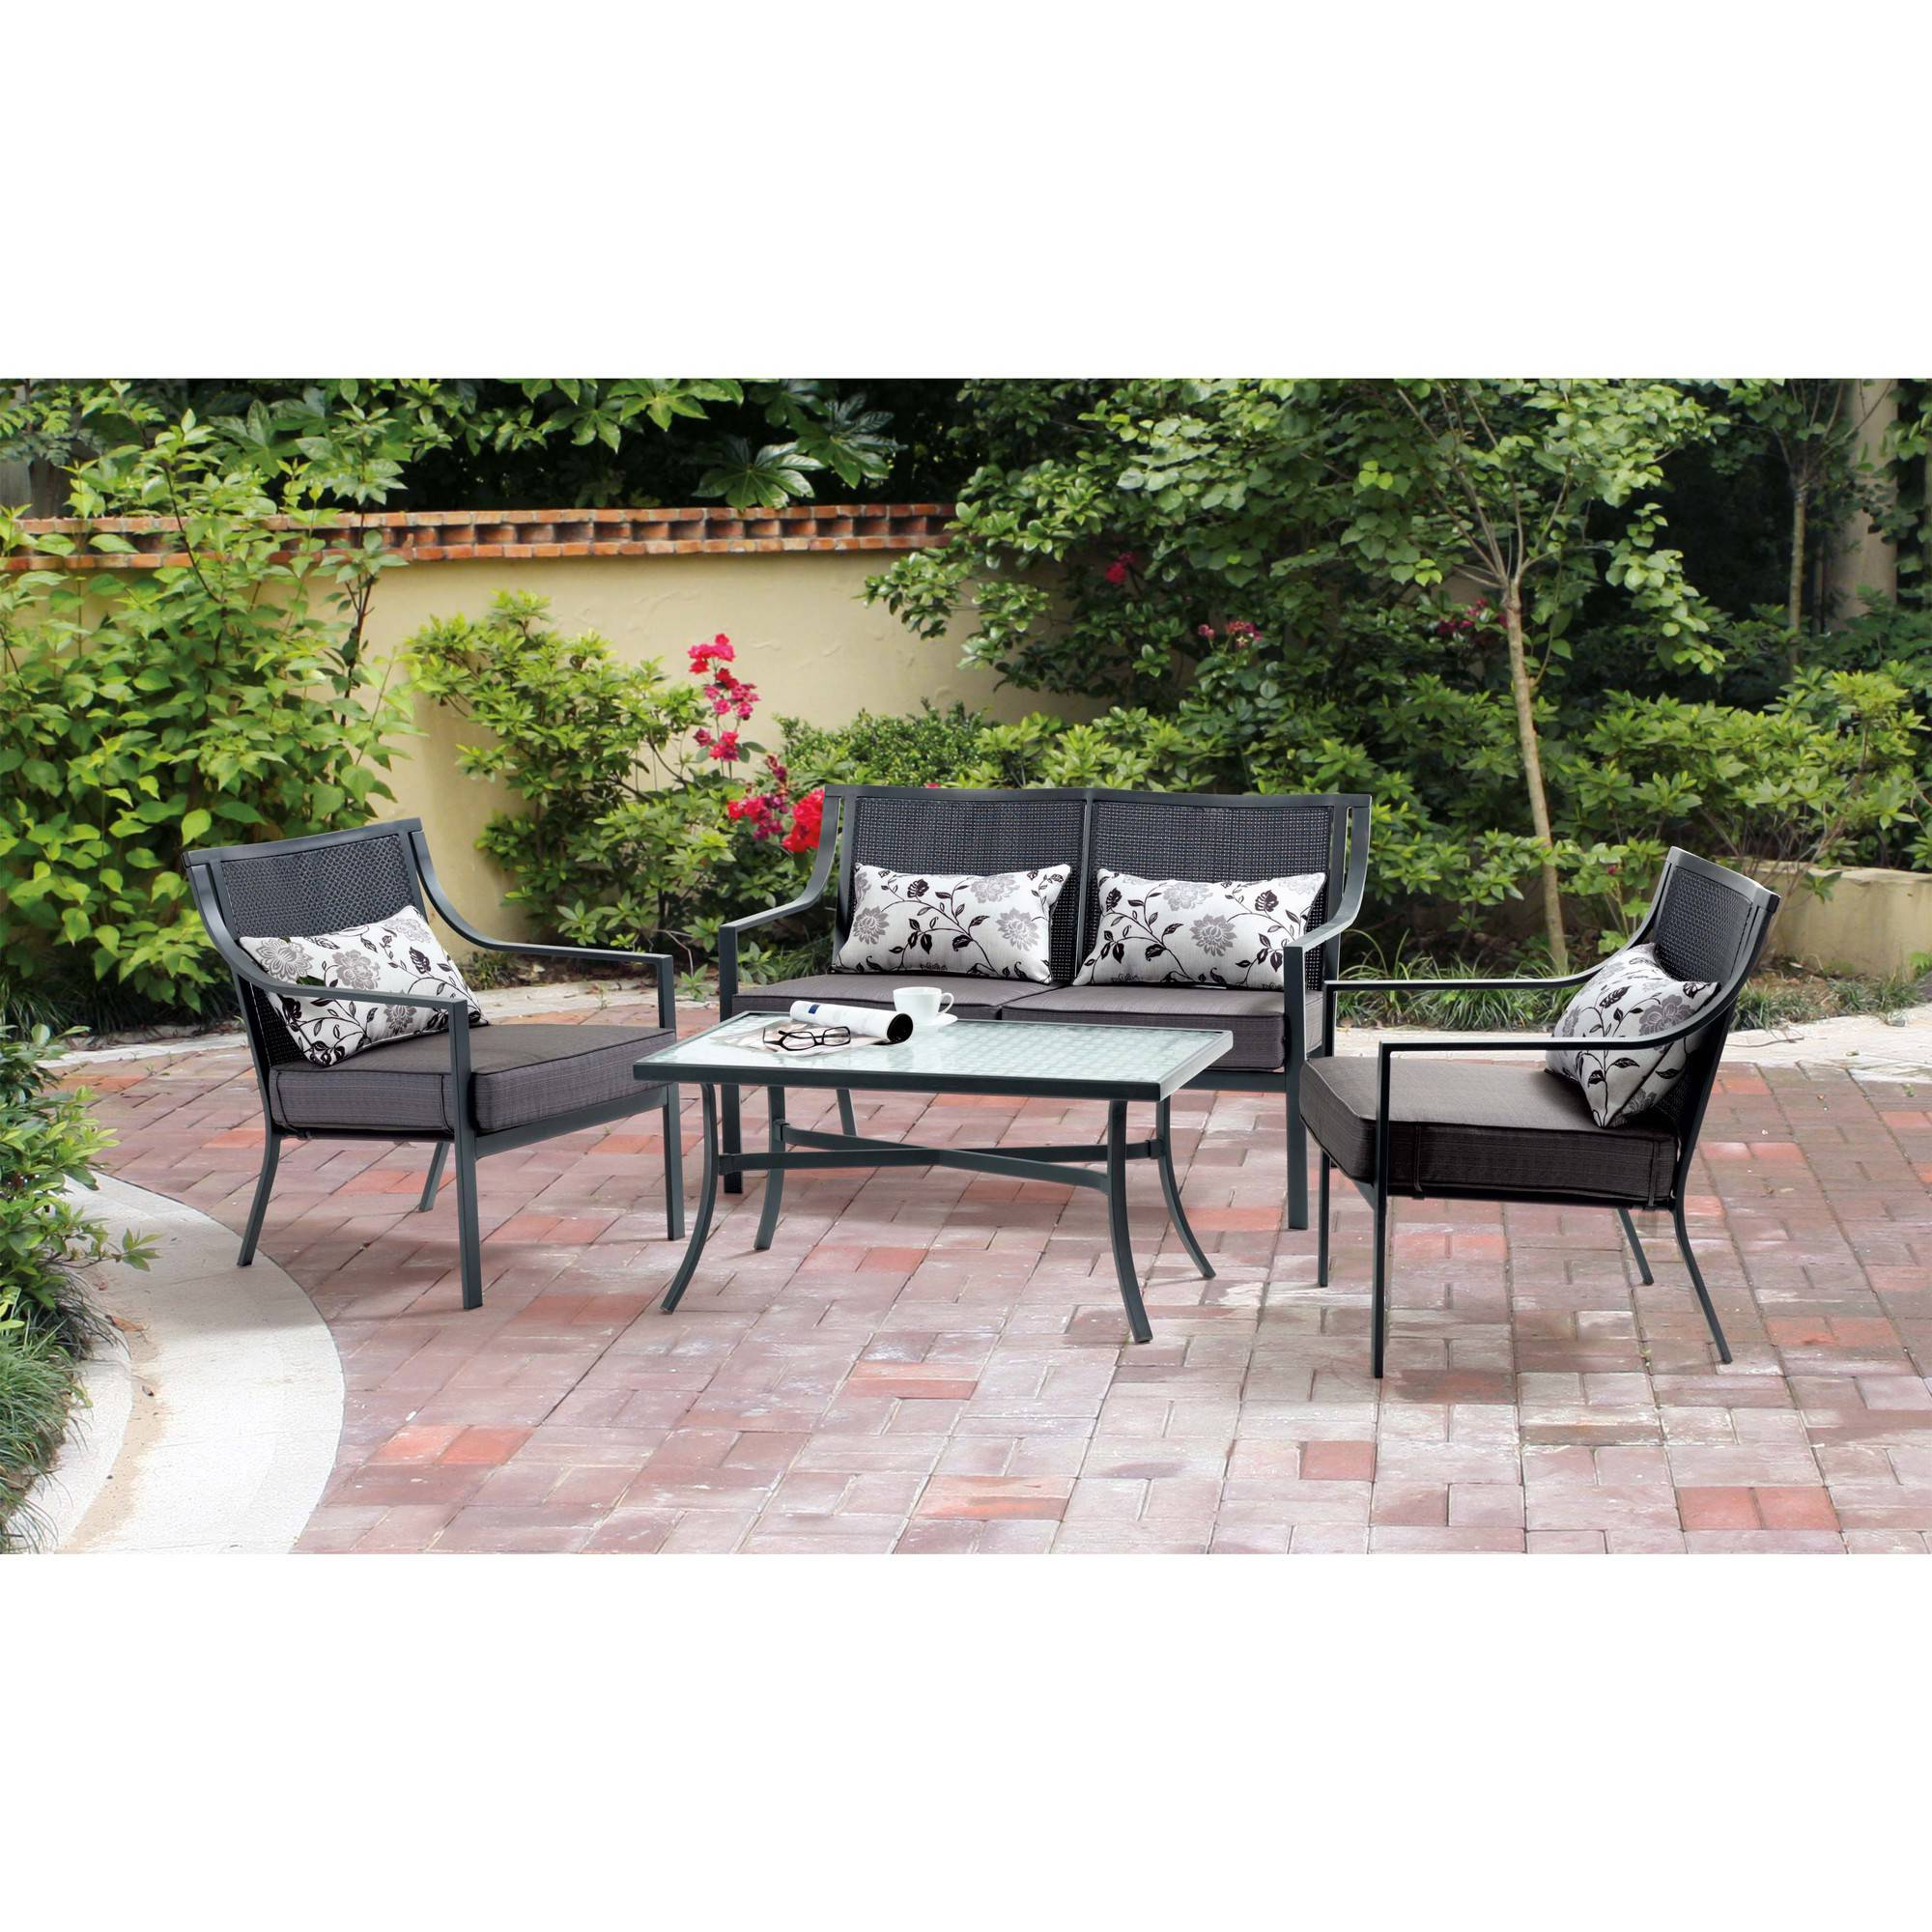 mainstays alexandra square 4 piece patio conversation set grey with leaves seats 4 with gray cushions walmart com